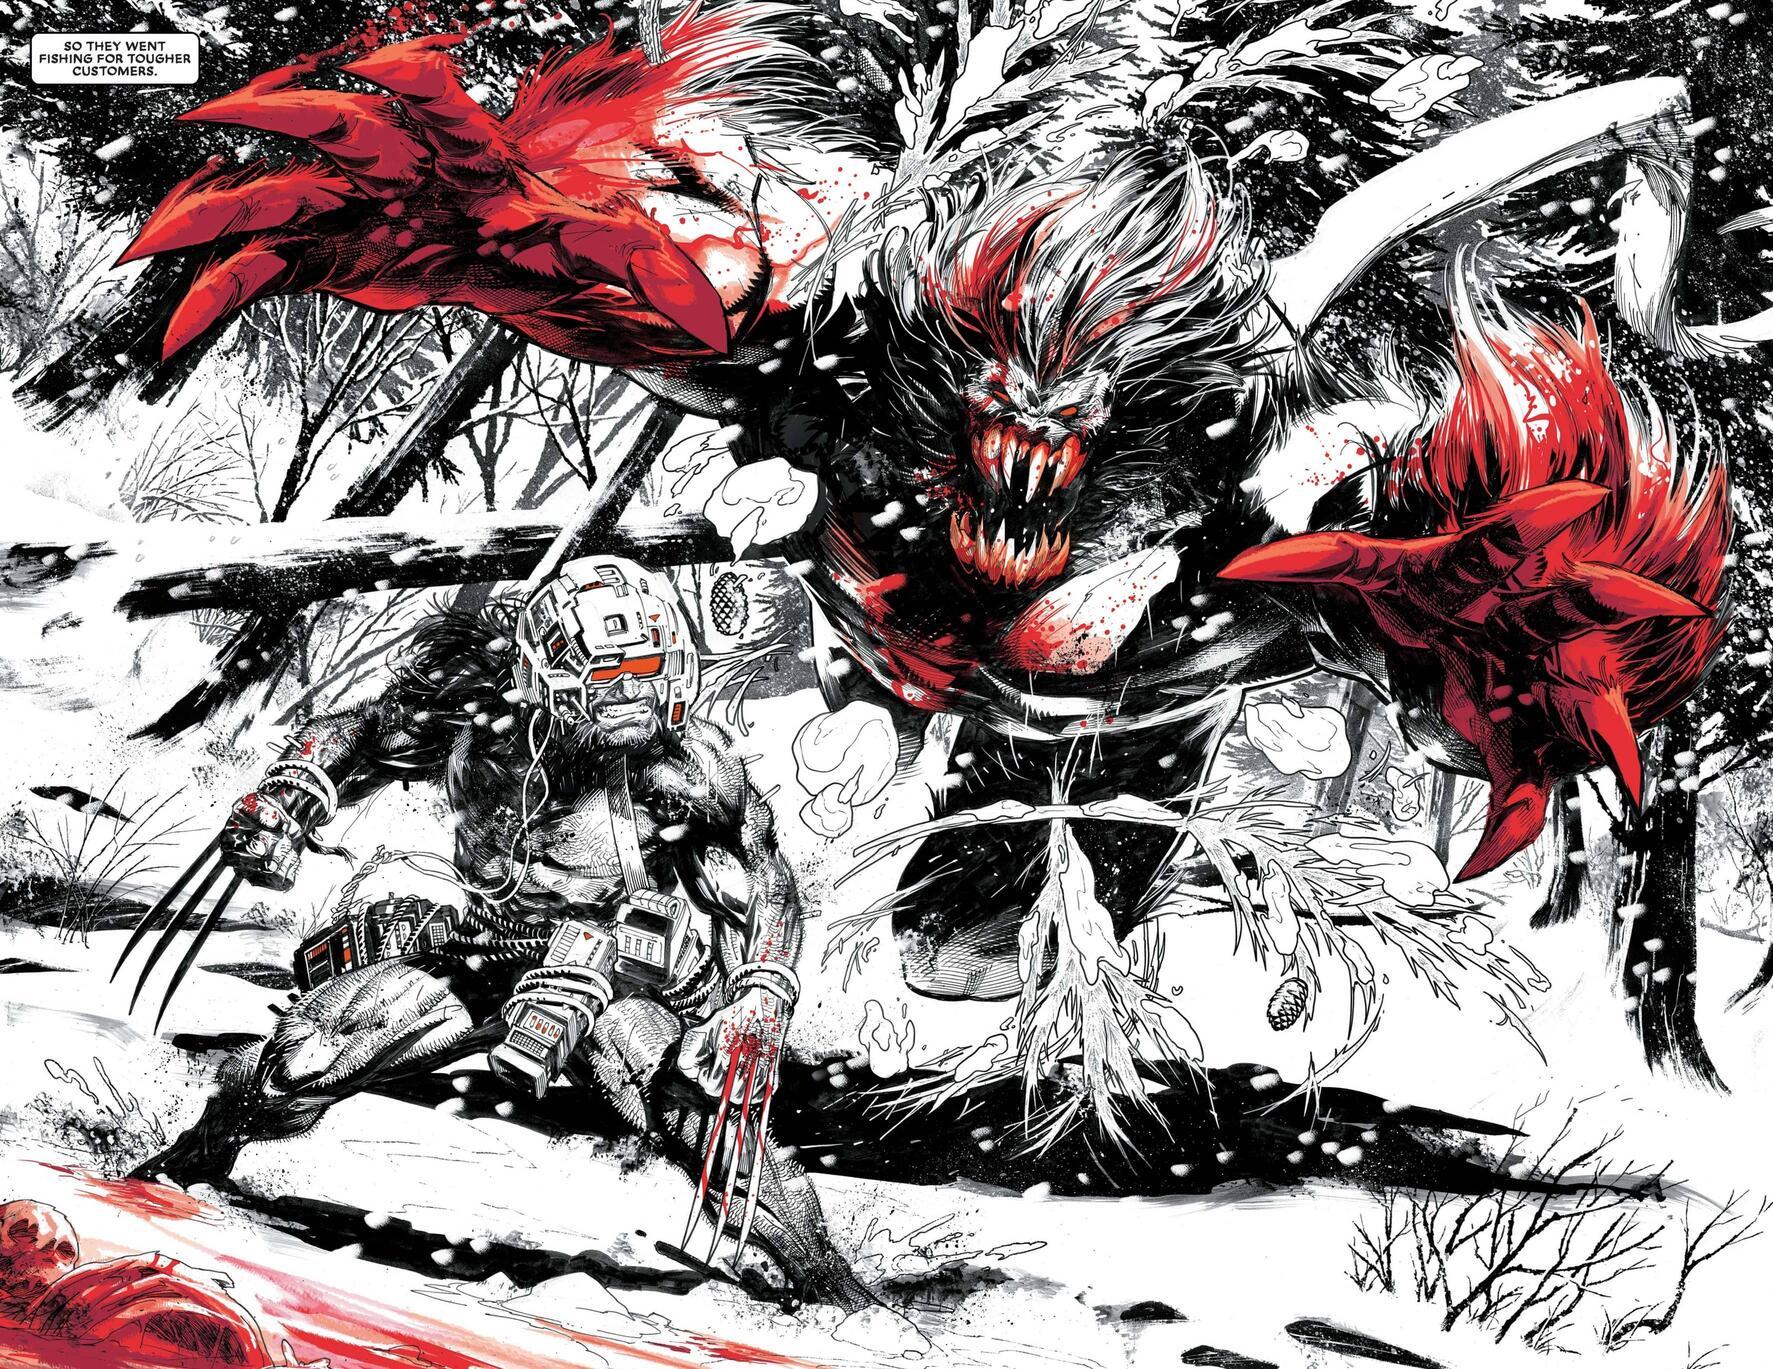 Logan cuts a swath in Black, White, and Blood.